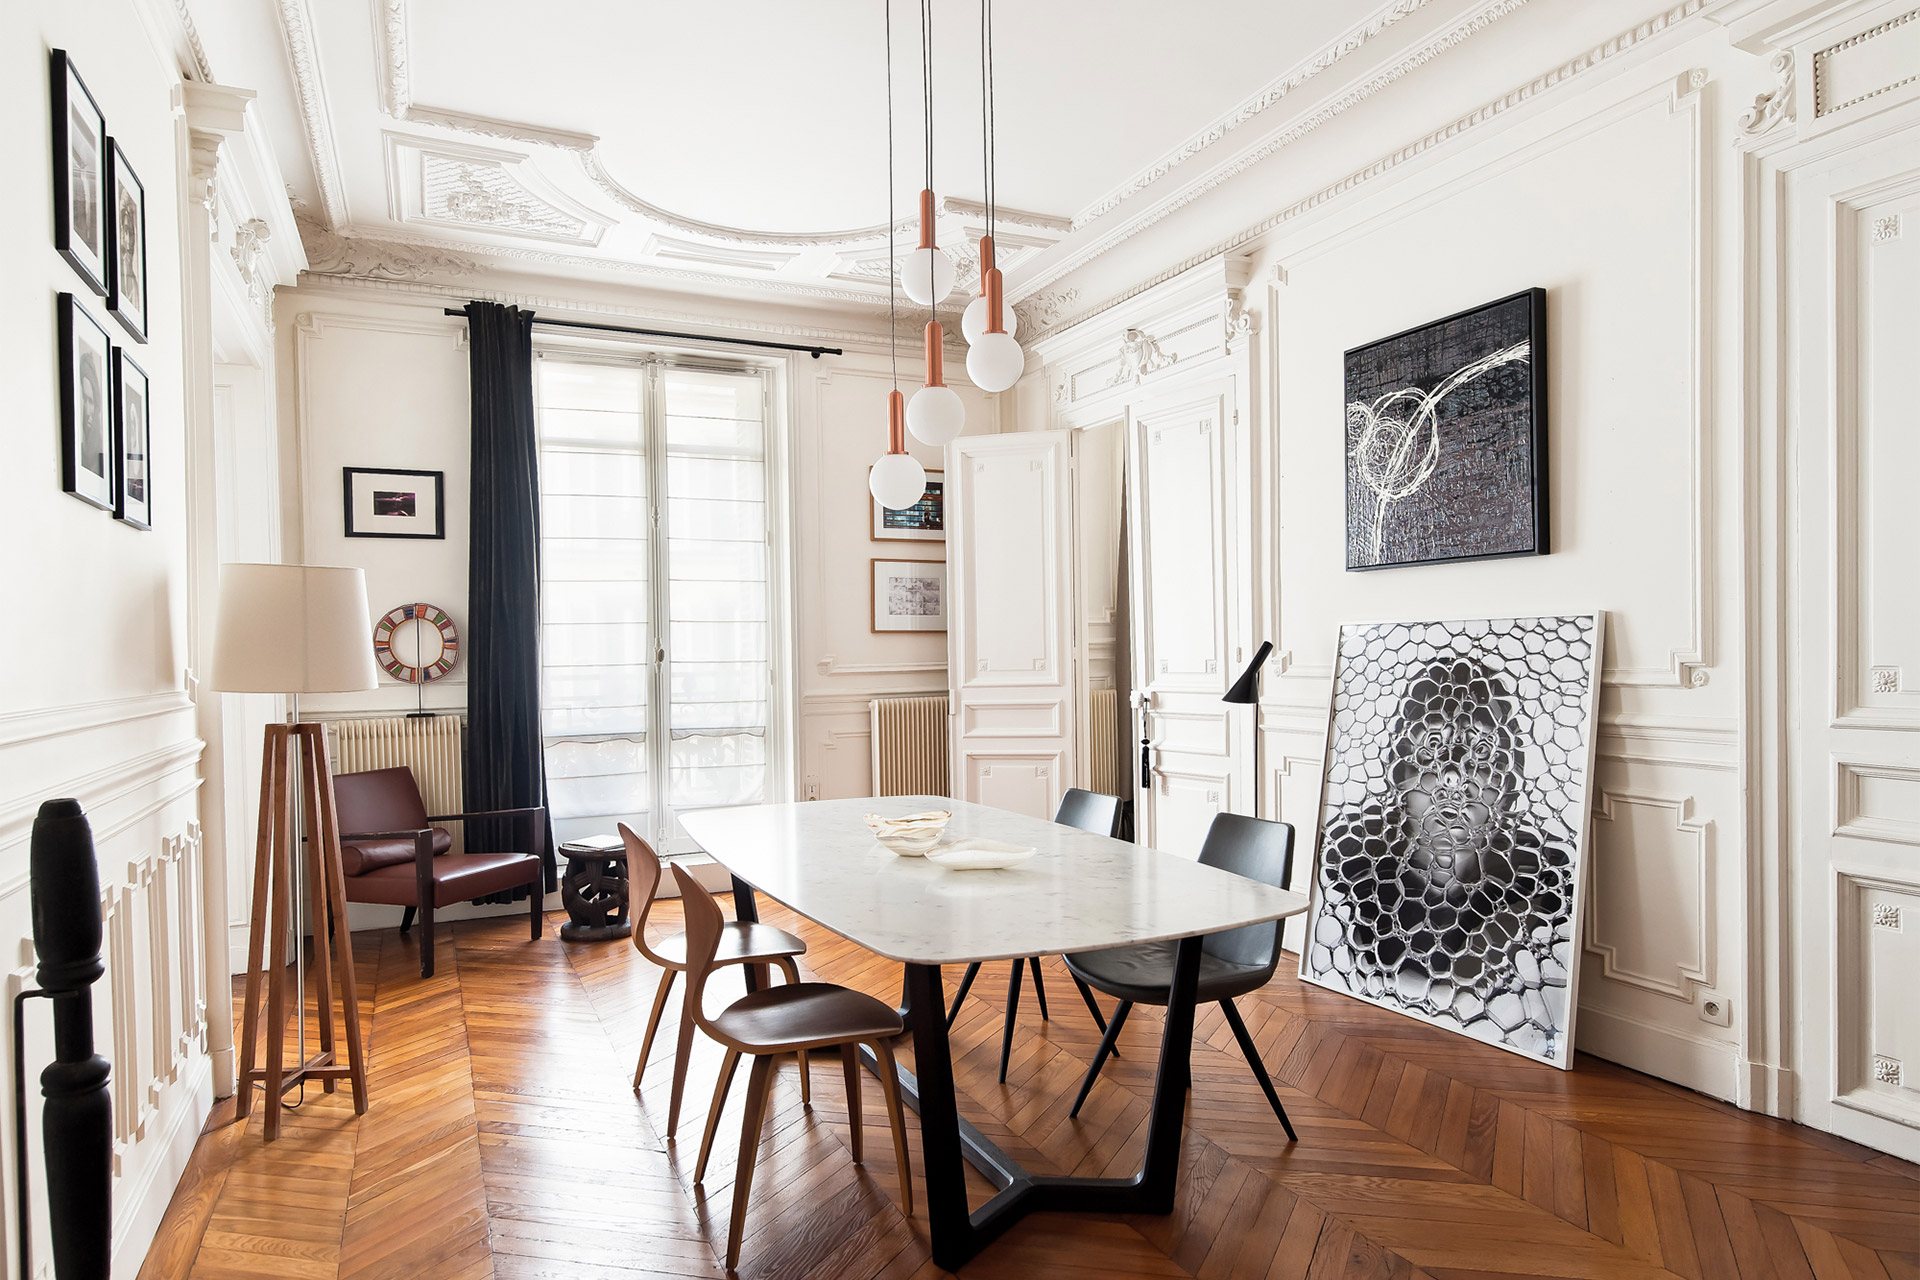 Stunning dining room in the heart of the home in the Cavailles Paris rental